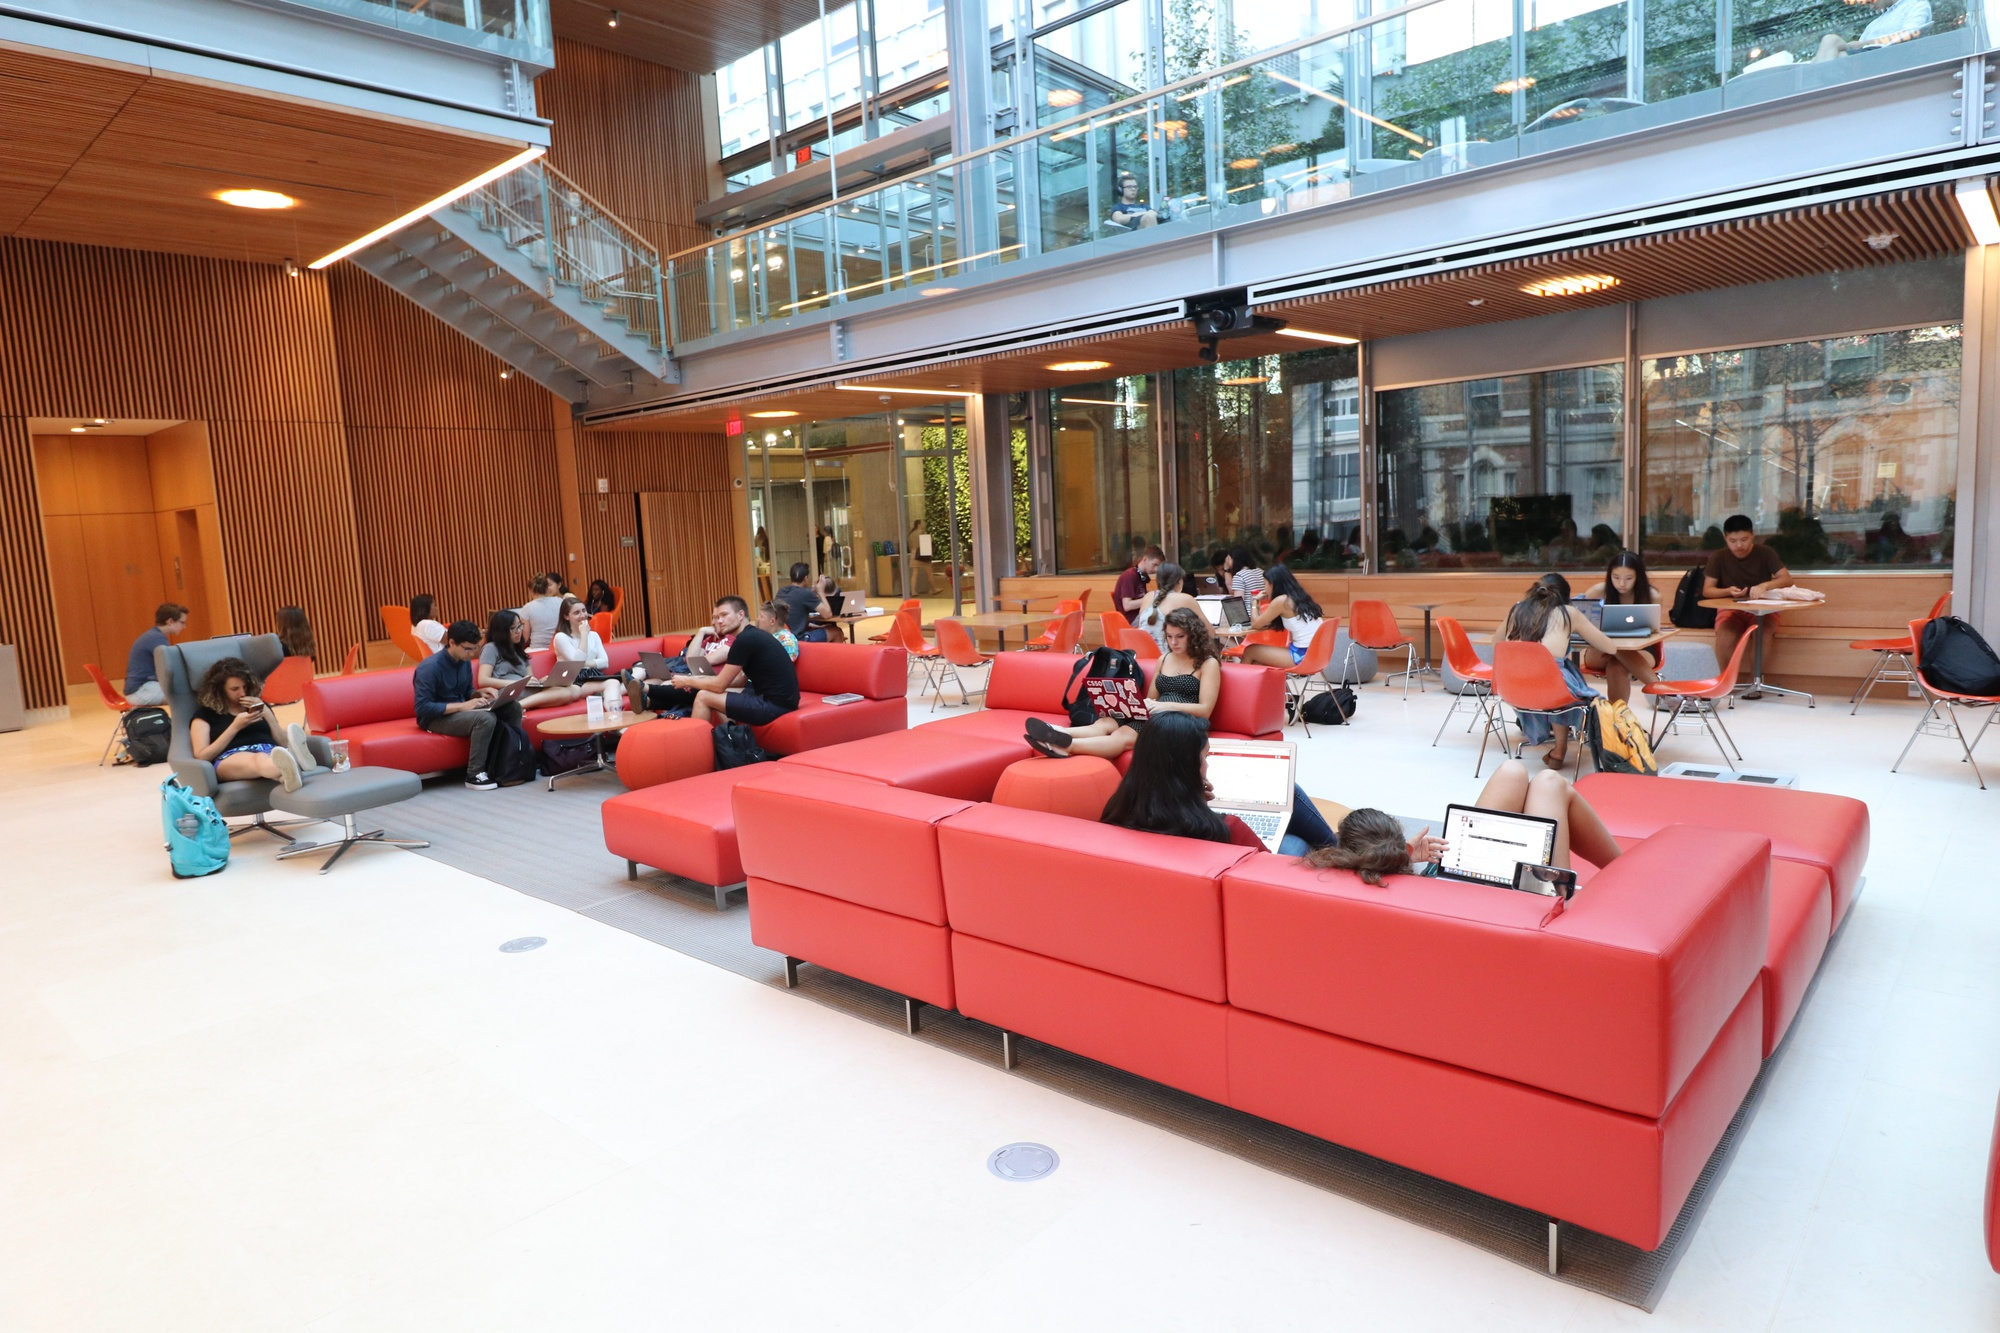 Students study in the brand-new Smith Campus Center.